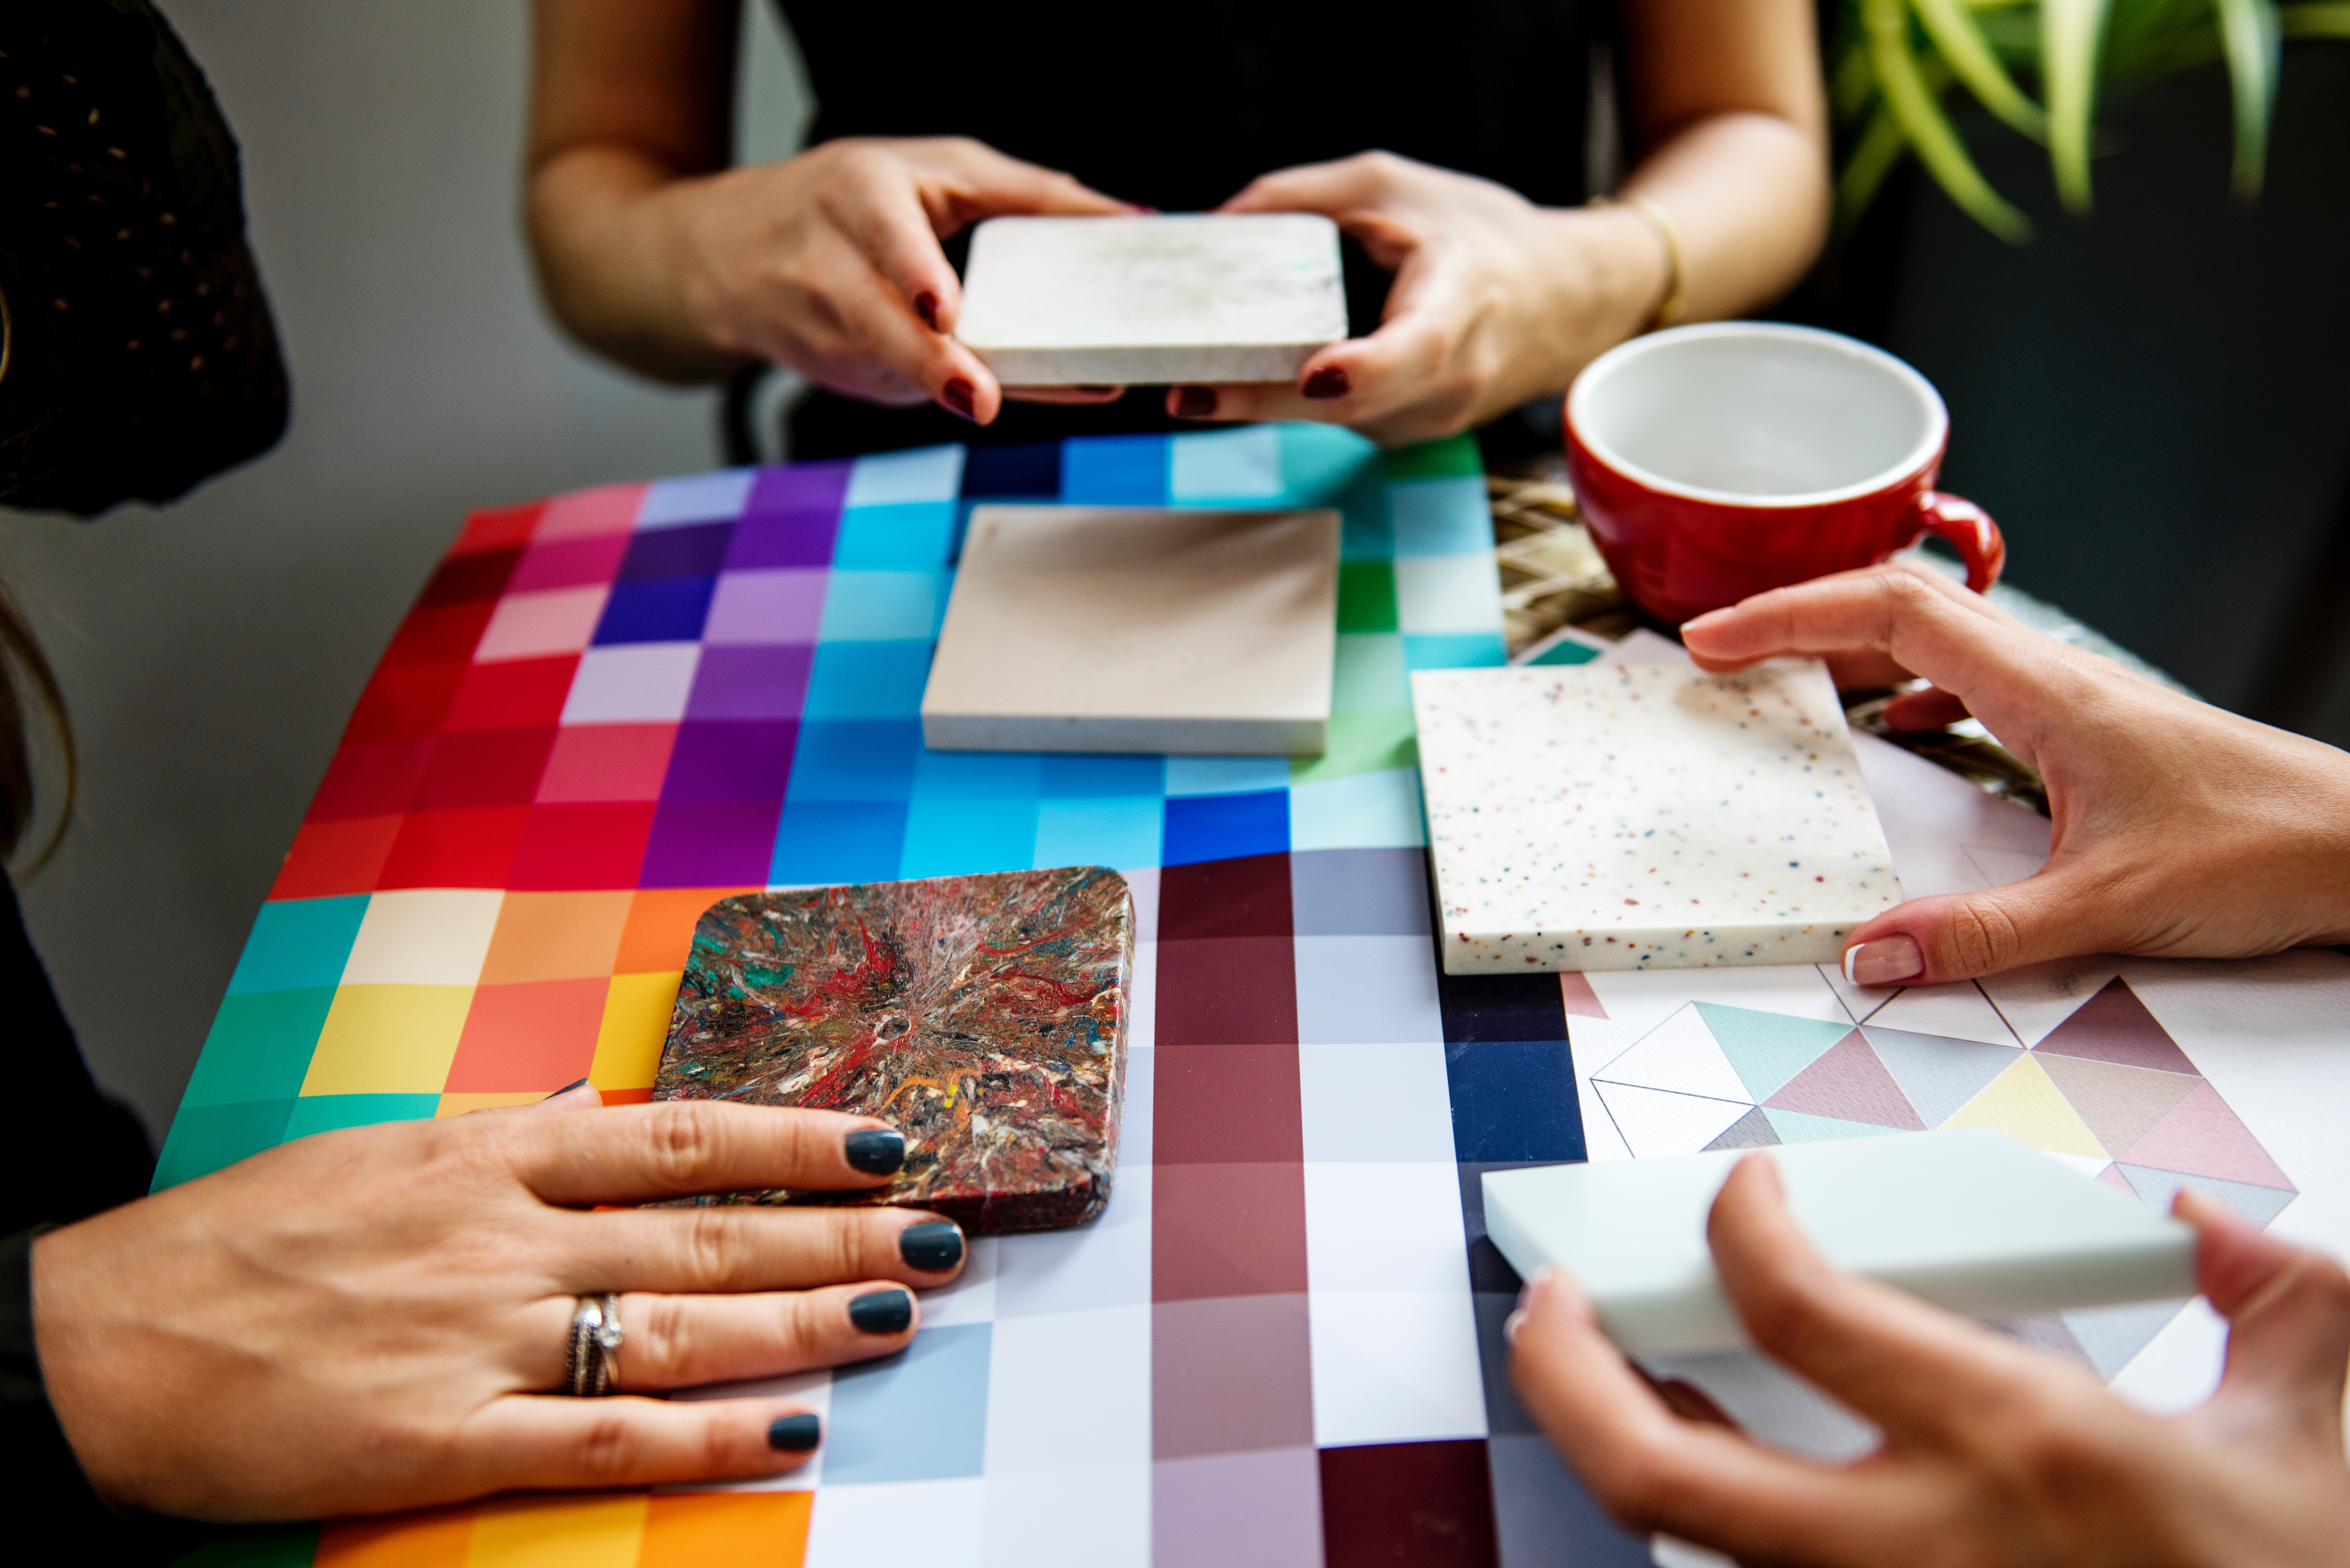 Shallow Focus Photography of Three People Holding Square Panels, Coffee cup, Interior, Working, Women, HQ Photo